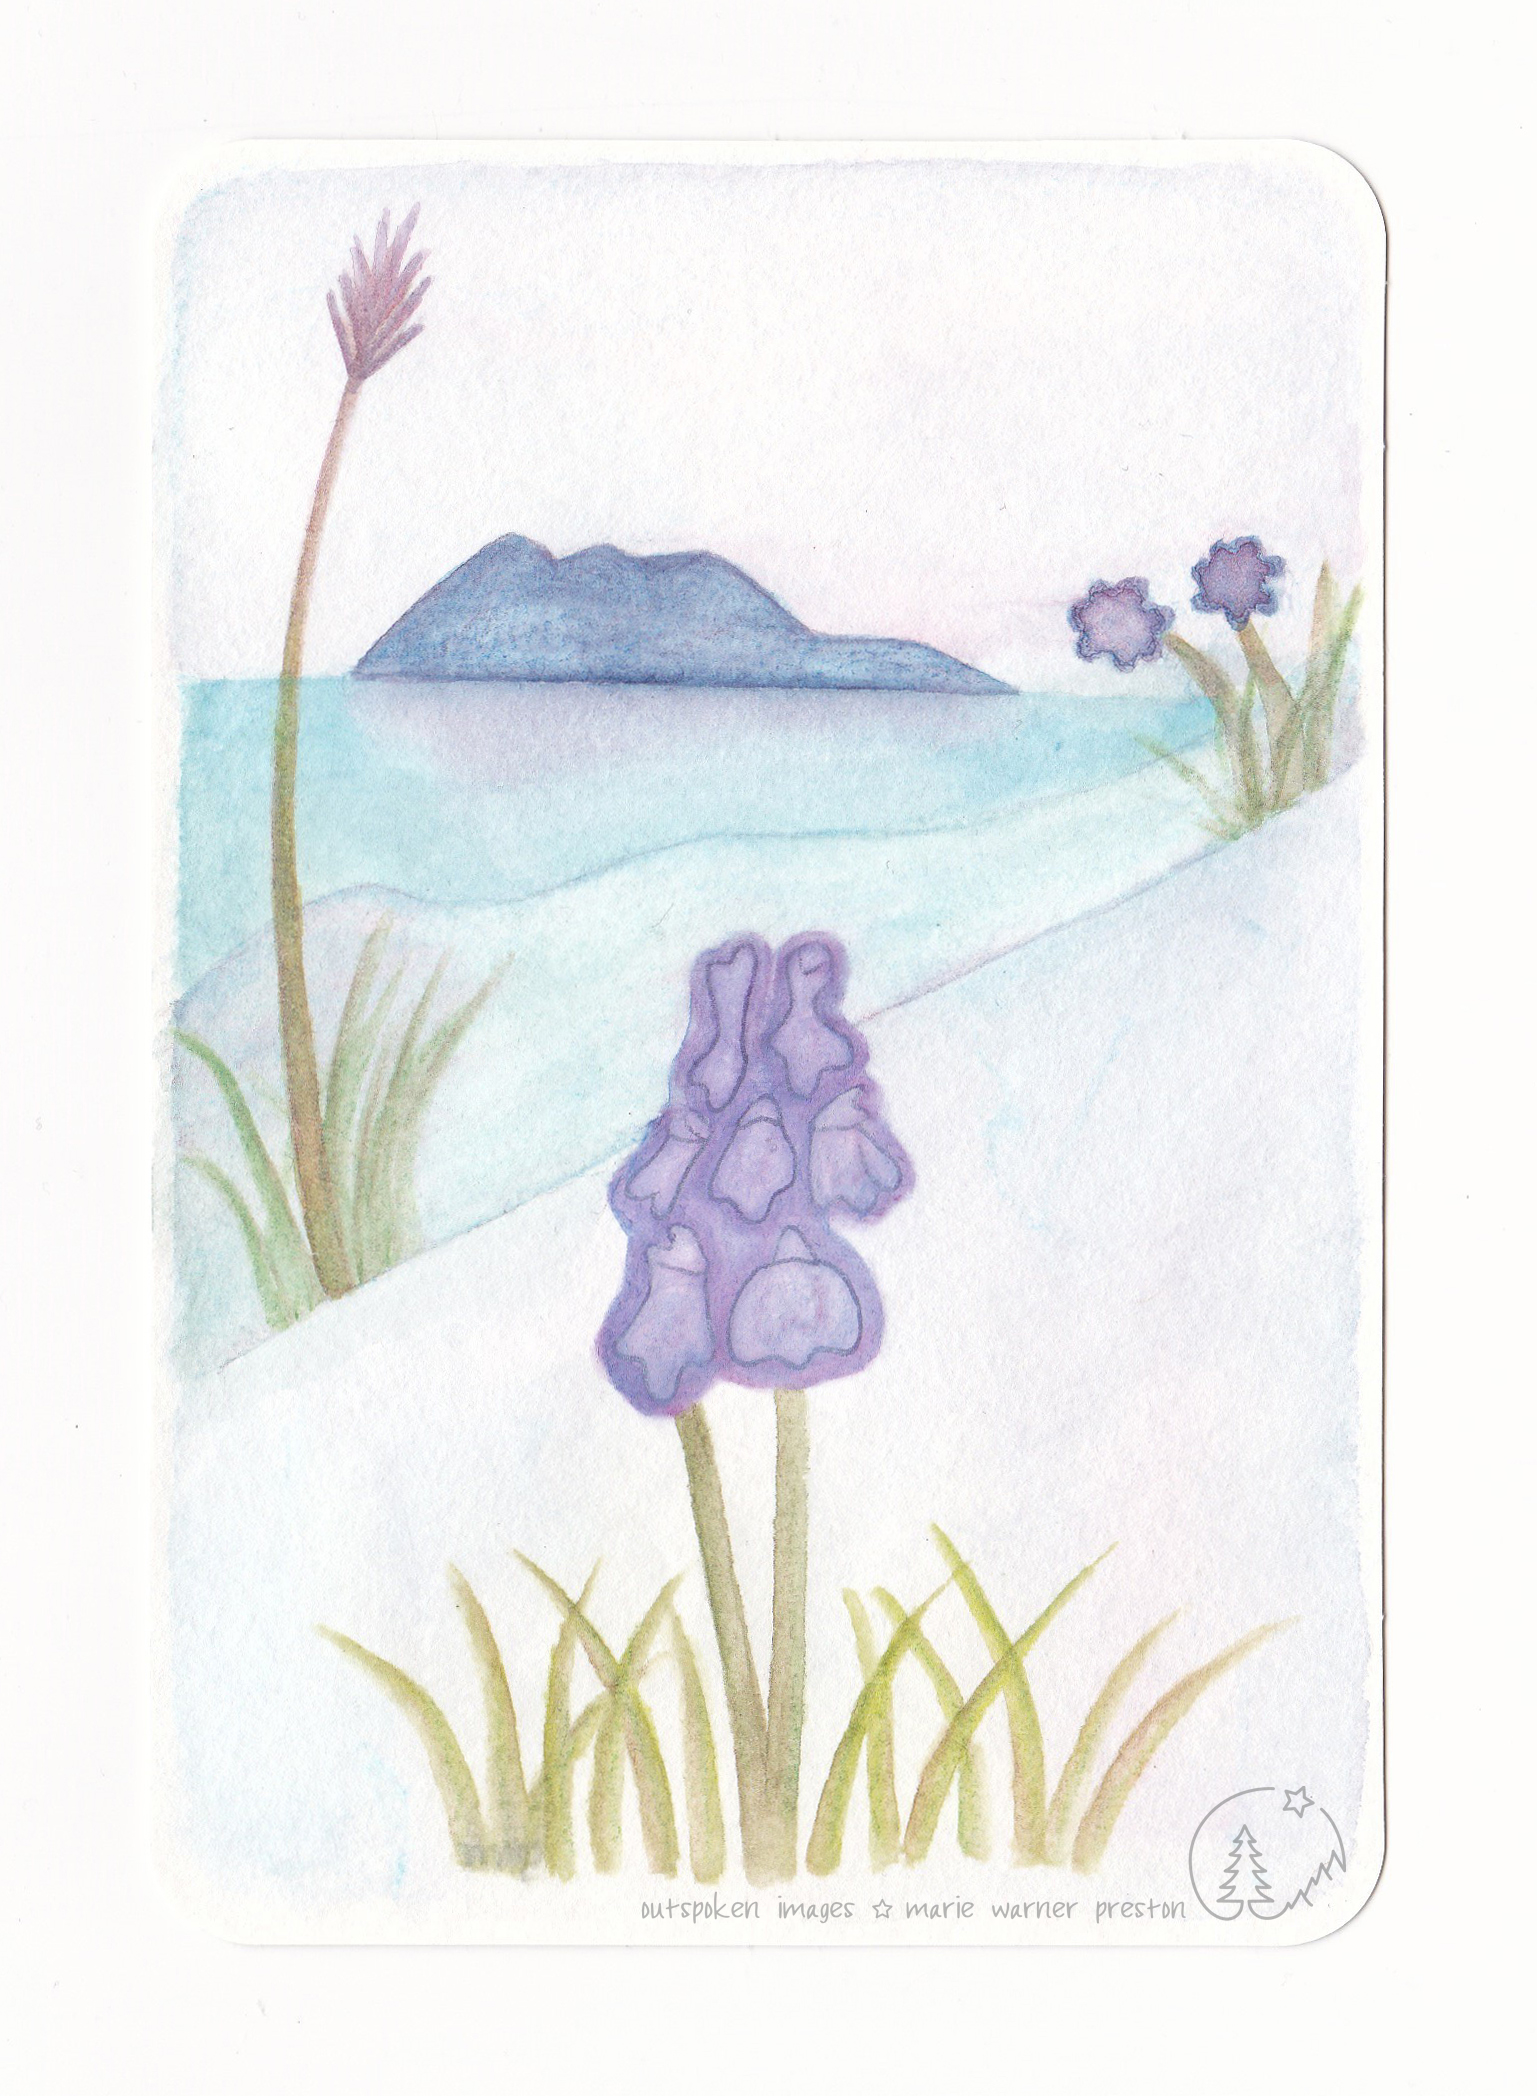 Purple flowers and grass seeds with green stems. Purple mountain reflected water. Purple Prospect ©2021 Outspoken Images by Marie Warner Preston